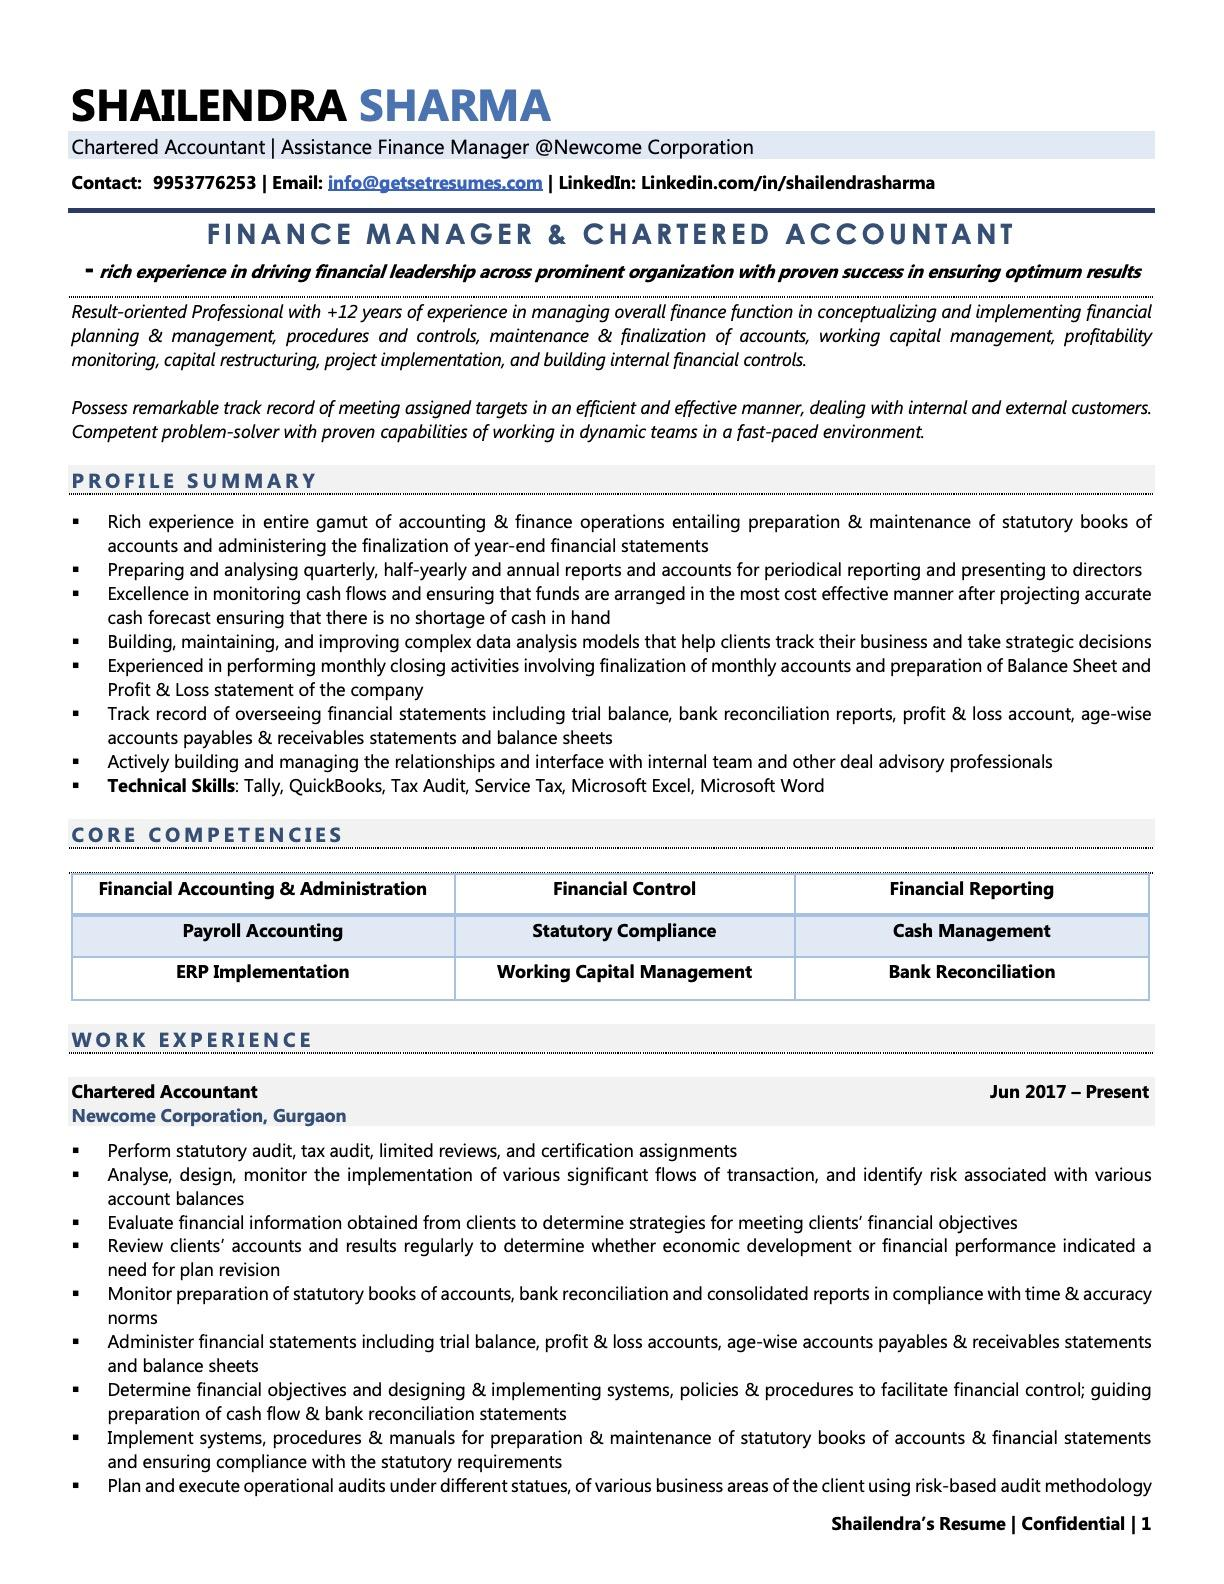 Chartered Accountant (CA) - Resume Example & Template